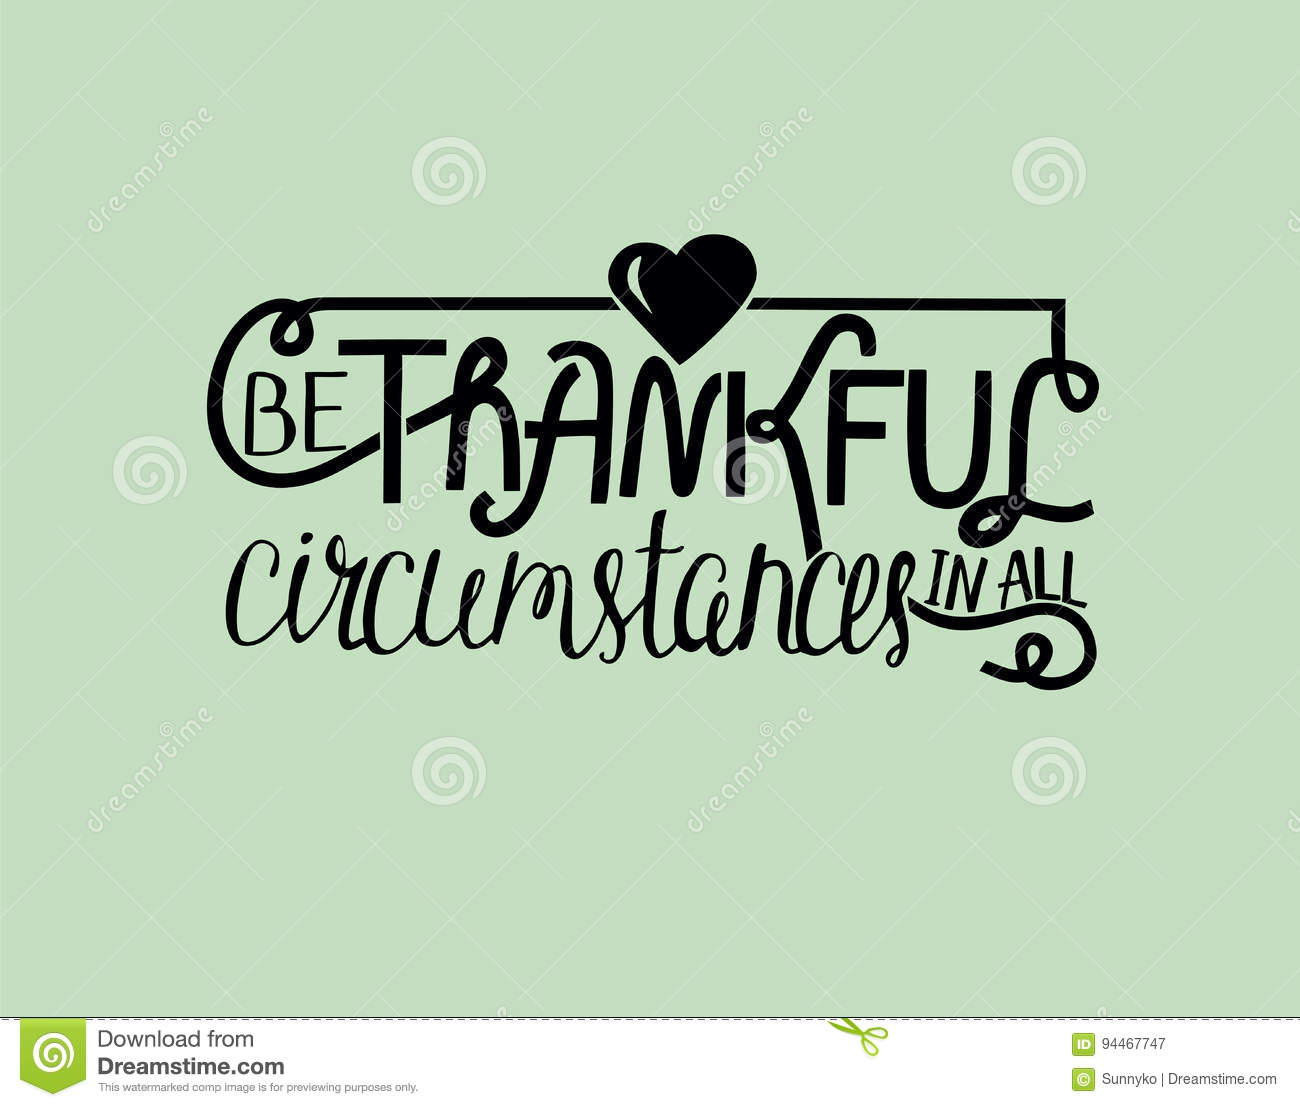 Biblical Lettering Be Thankful With Heart. Stock Vector   Illustration Of  Flavor, Biblical: 94467747